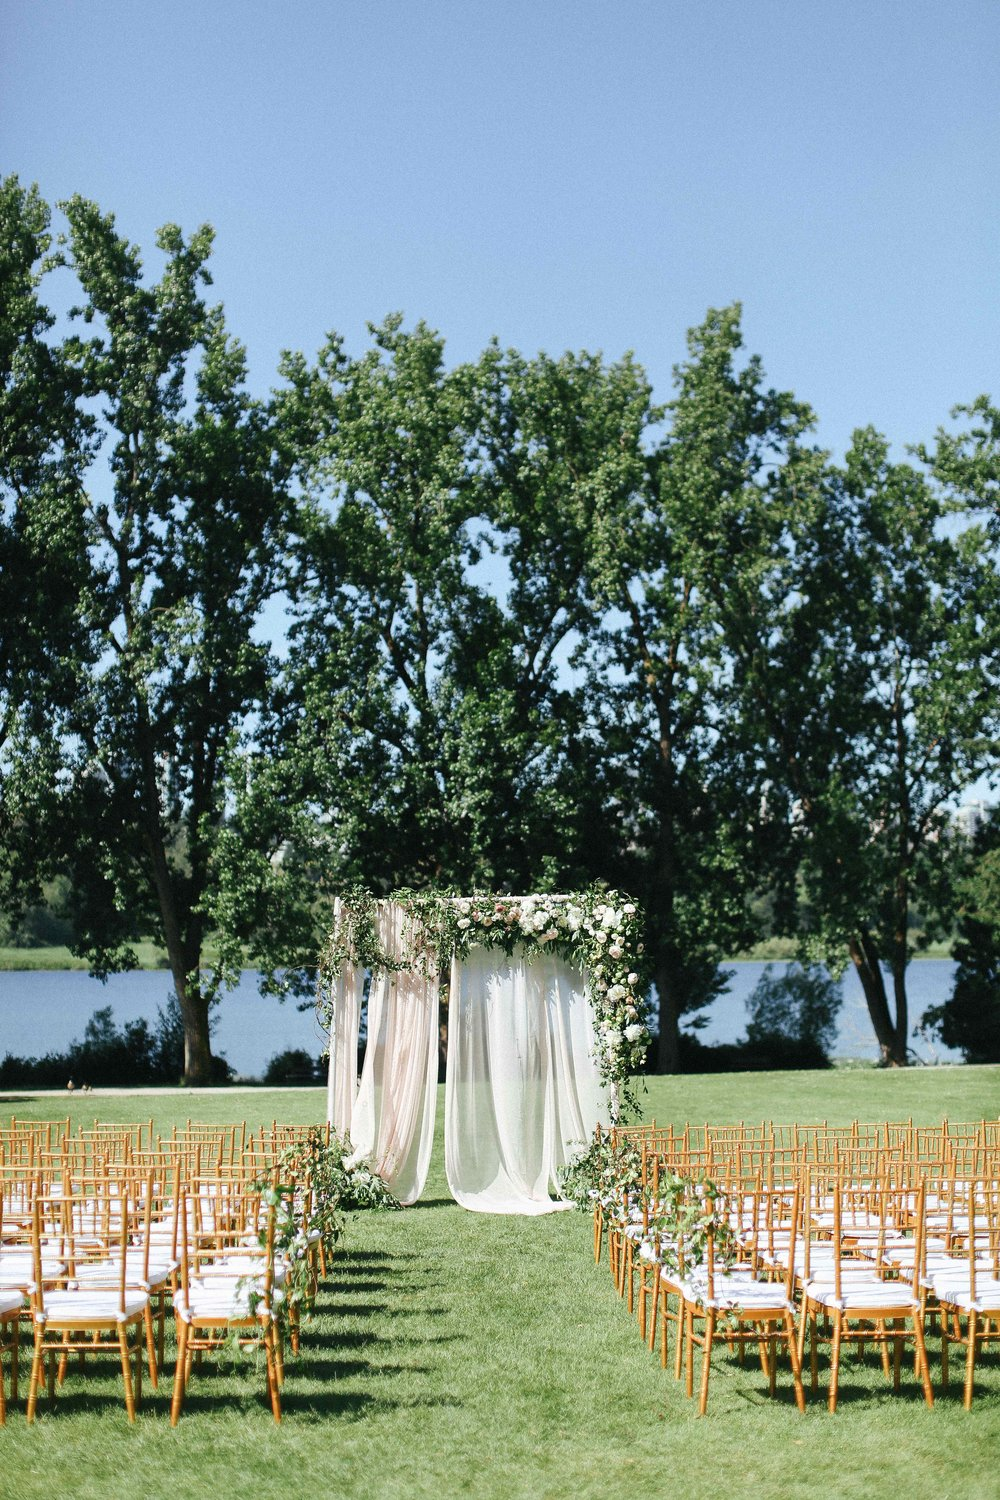 Hart-house-wedding-ceremony-setup-with-view